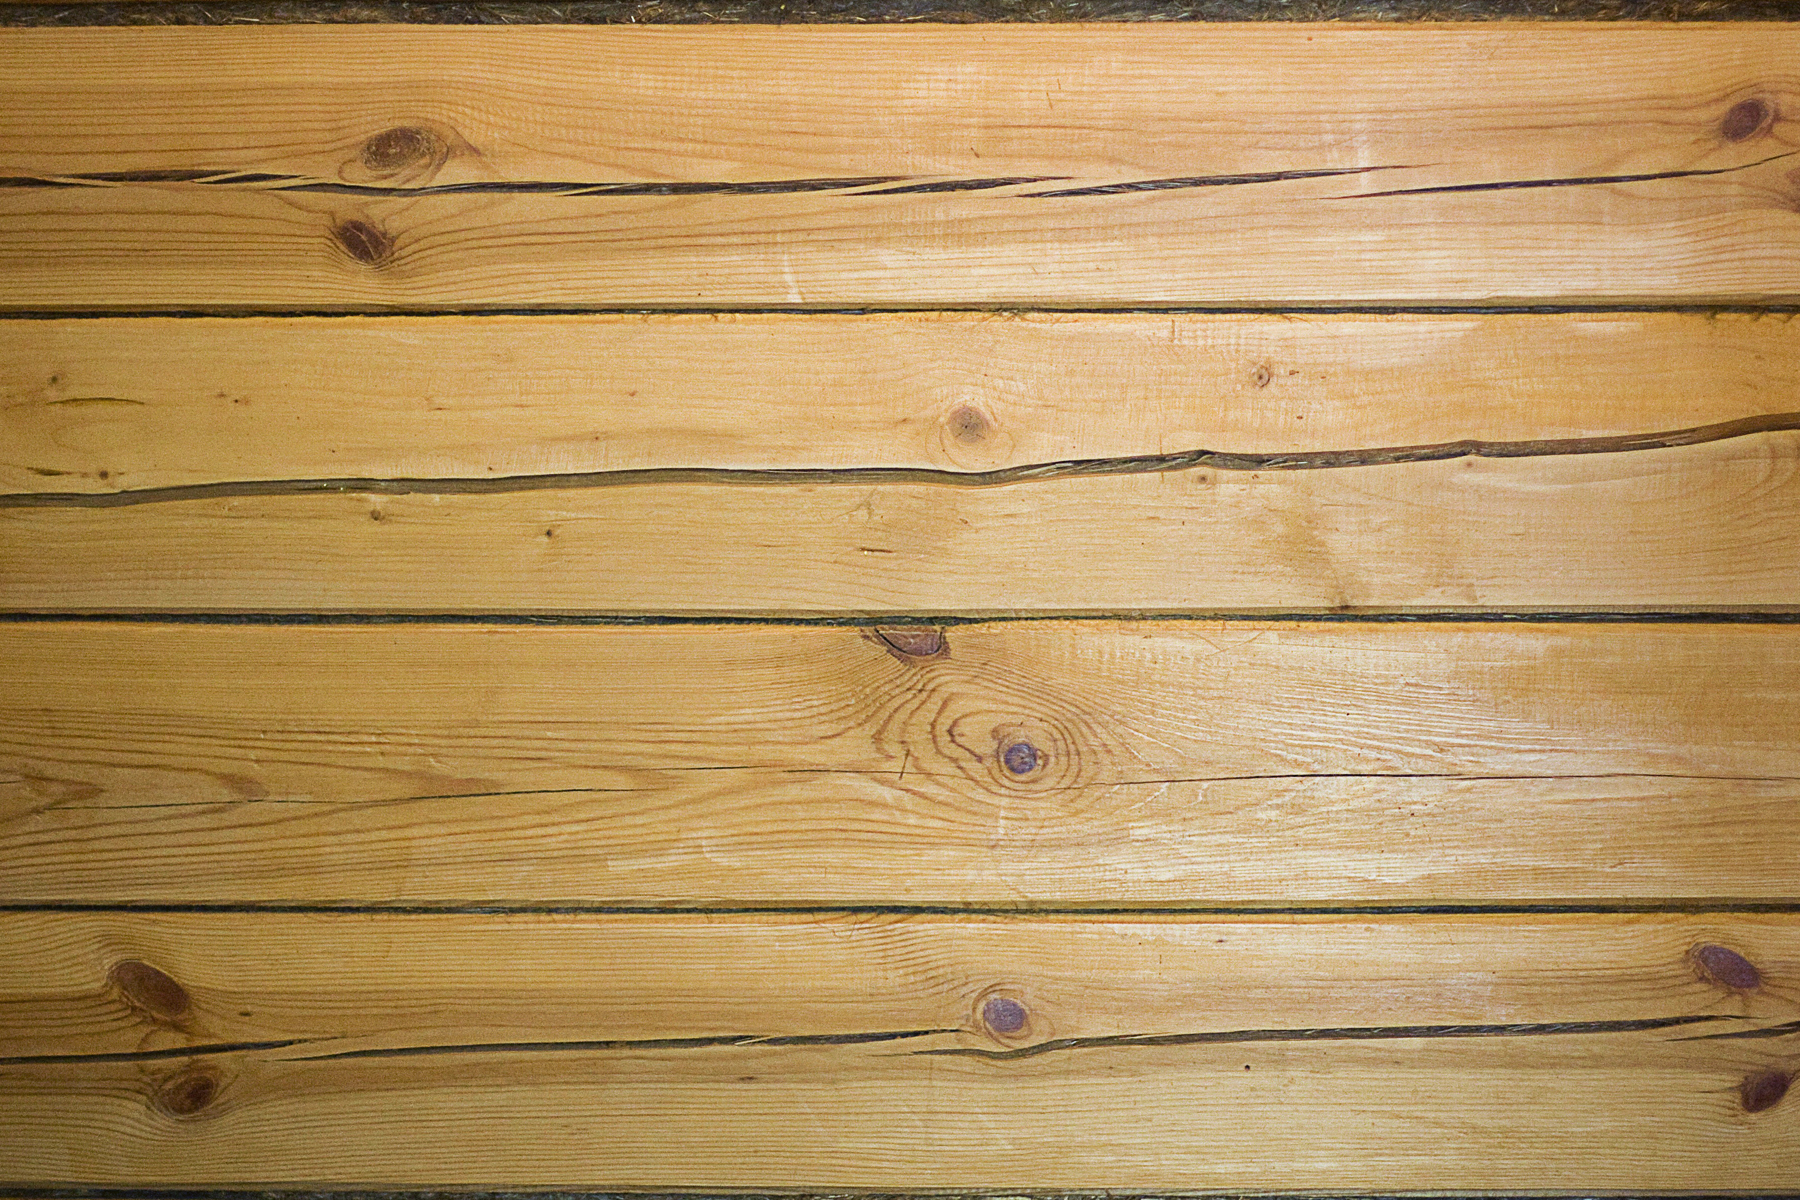 wood texture, Backdrop, Structure, Wood, Timber, HQ Photo